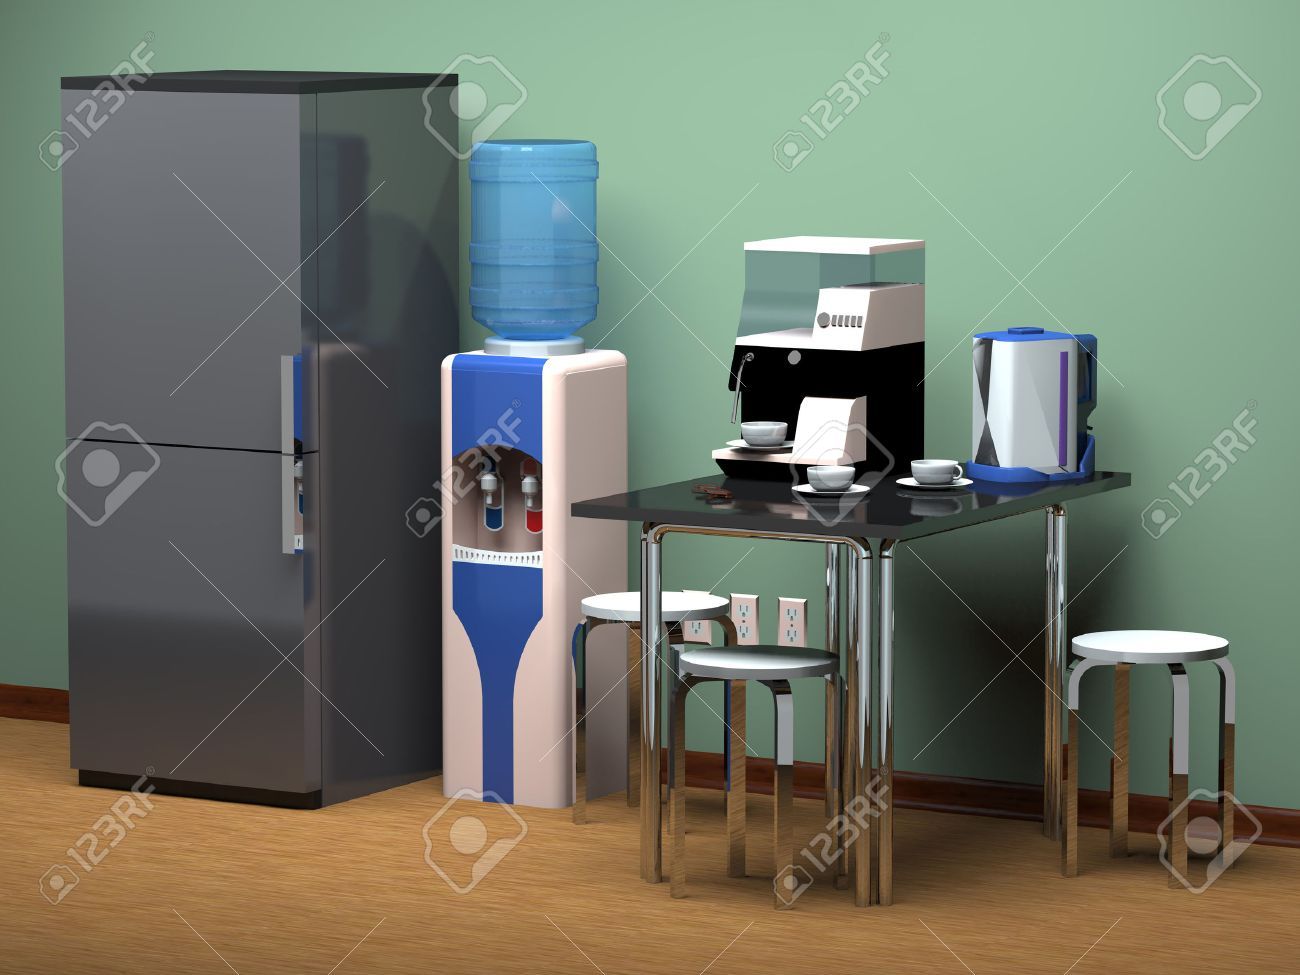 Refrigerator, kitchen table, drinking water cooler at the office. Stock Photo - 48899767